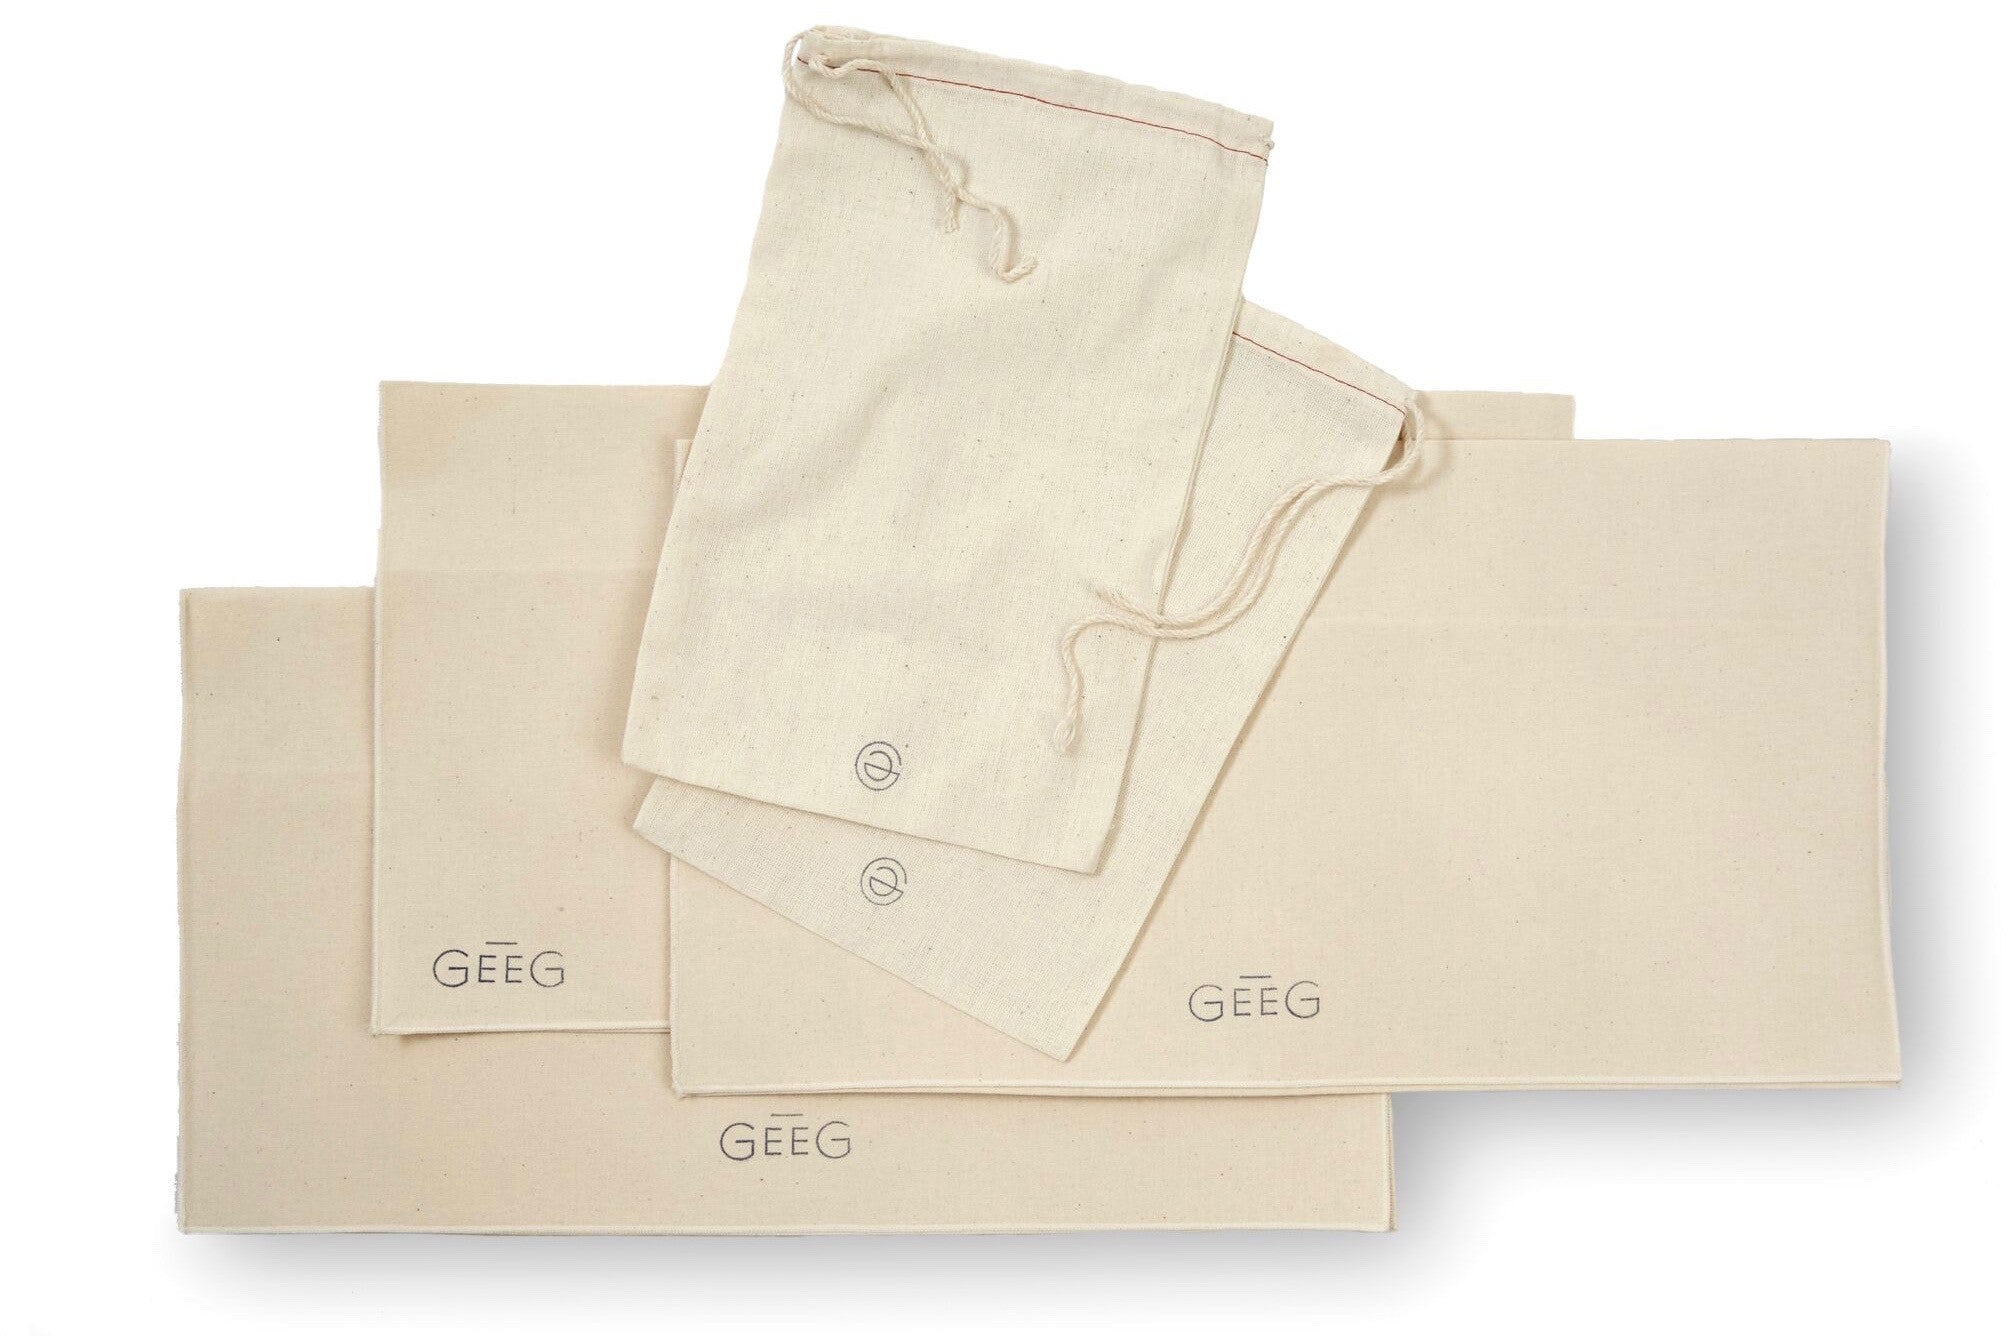 GEEG Custom Packaging made in the USA